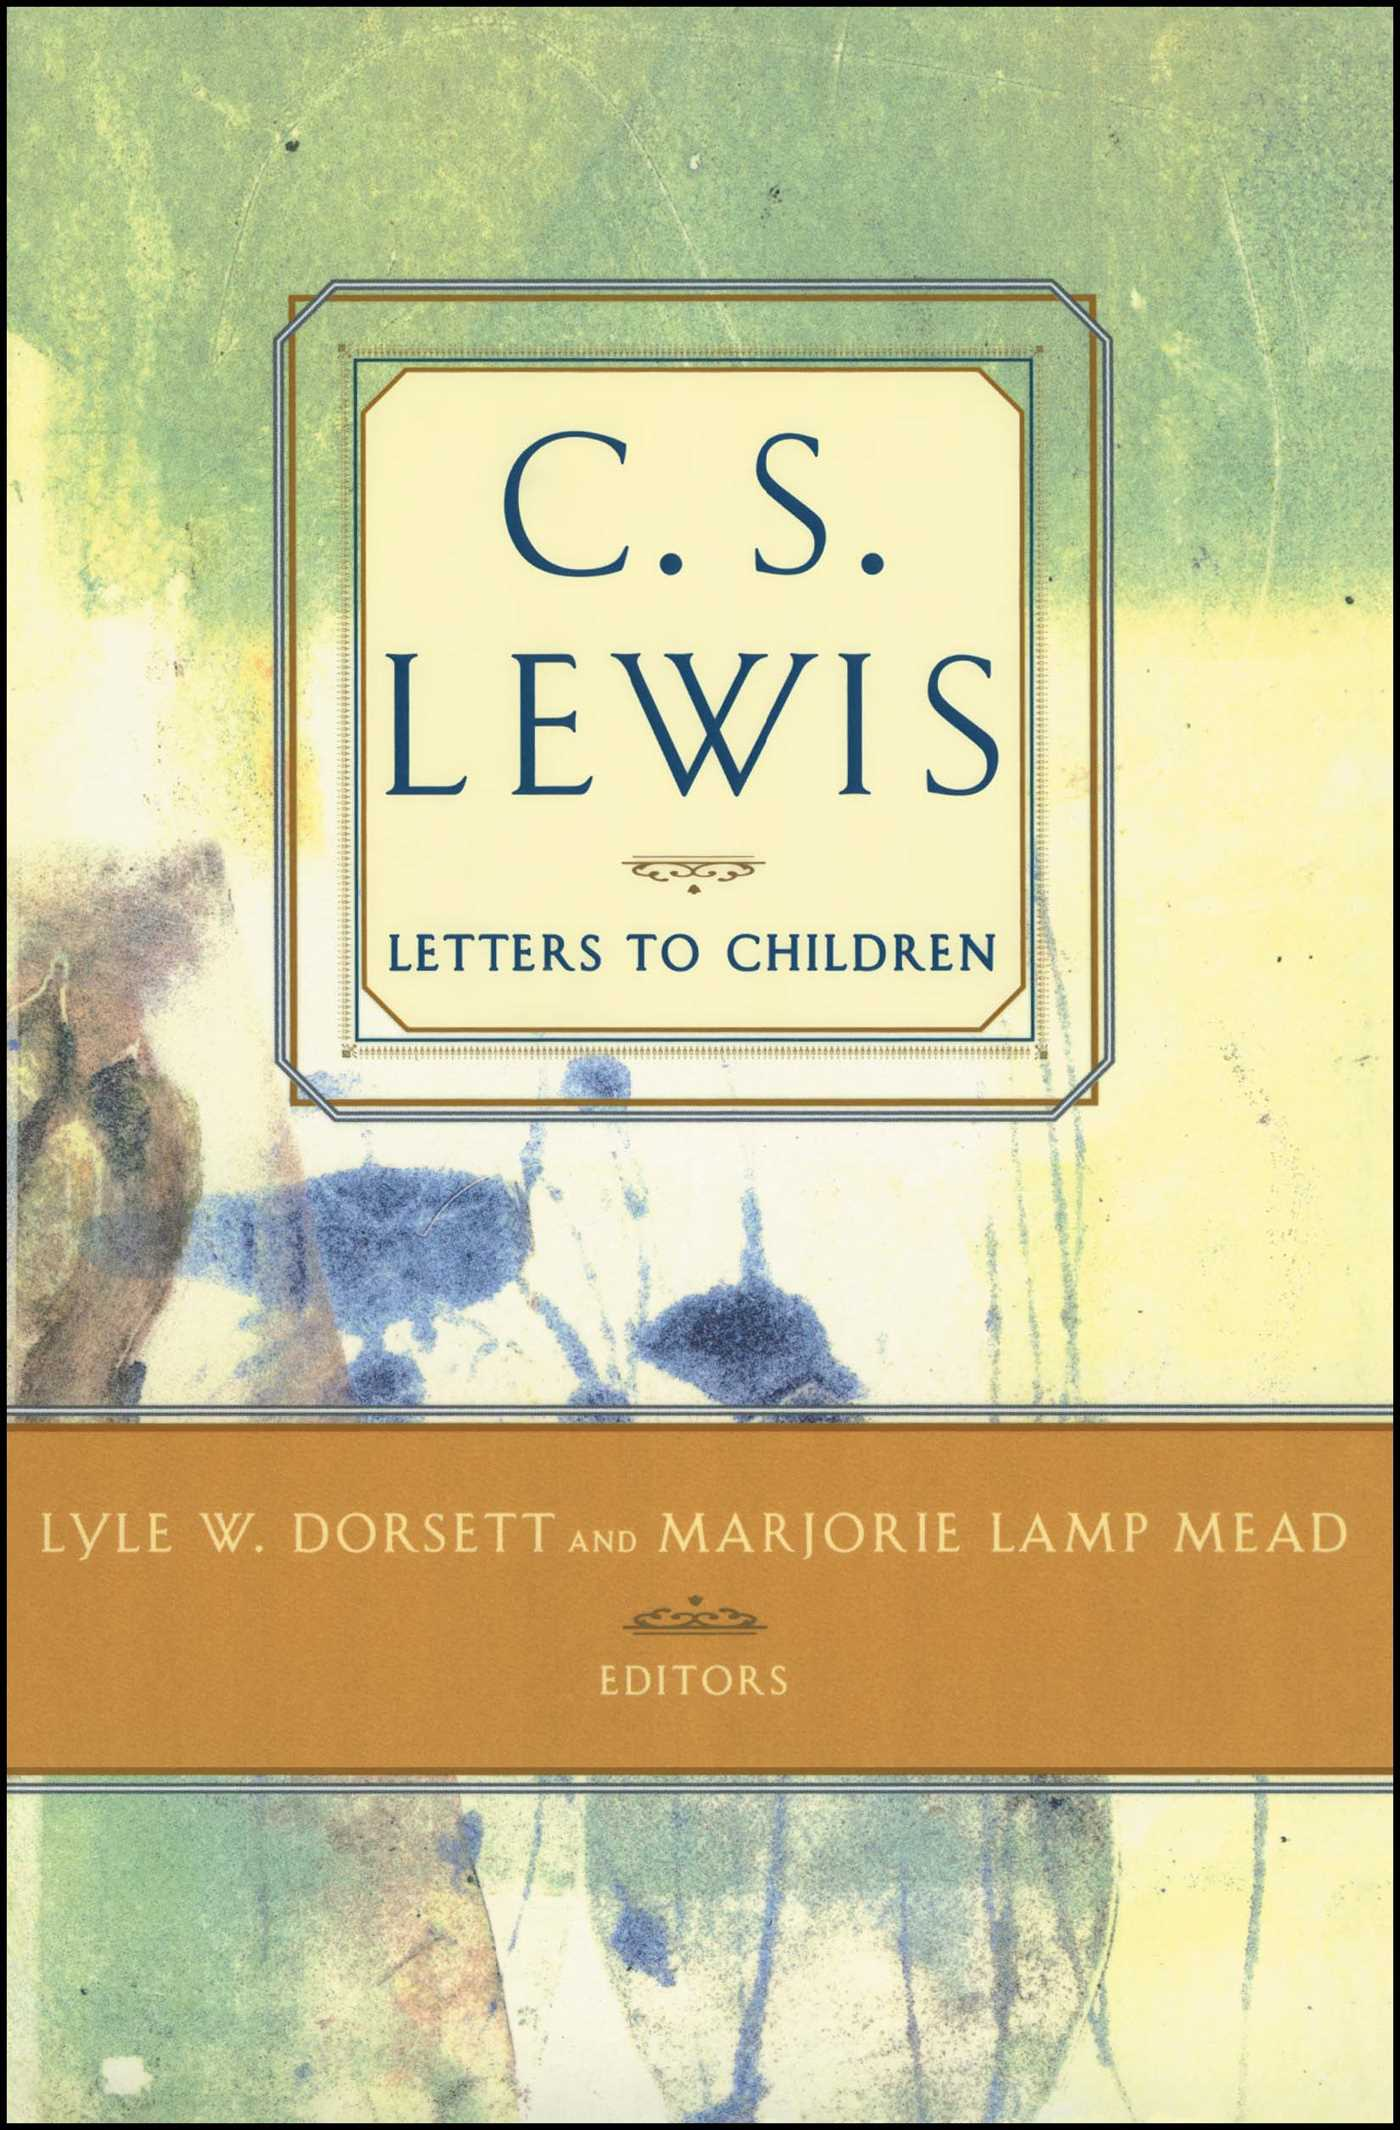 C s lewis letters to children 9780684823720 hr